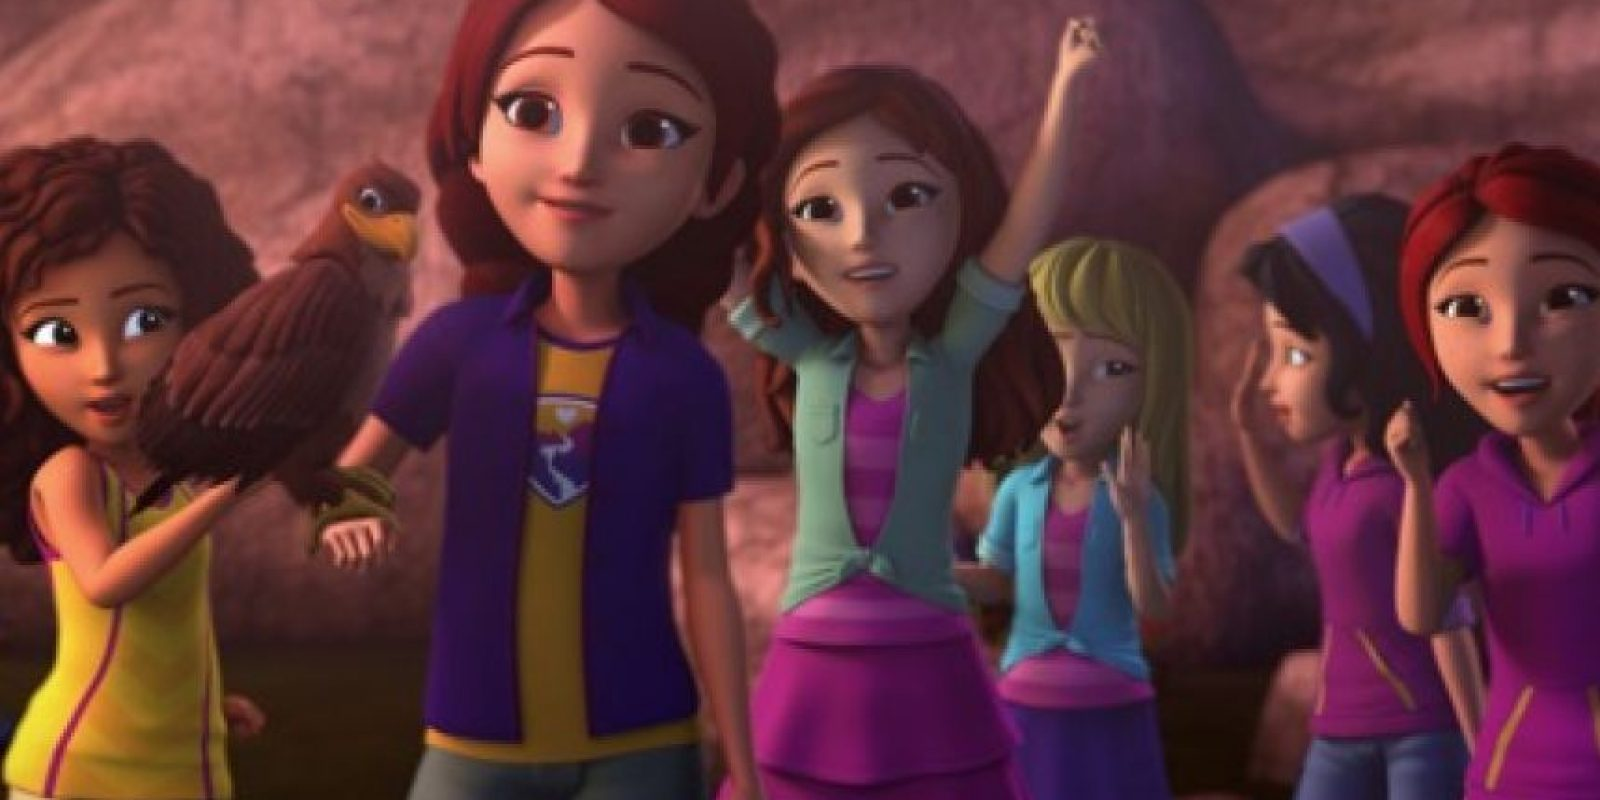 """LEGO FRIENDS"" The Power of Friendship"" temporada 1 – Disponible a partir del 4 de marzo."